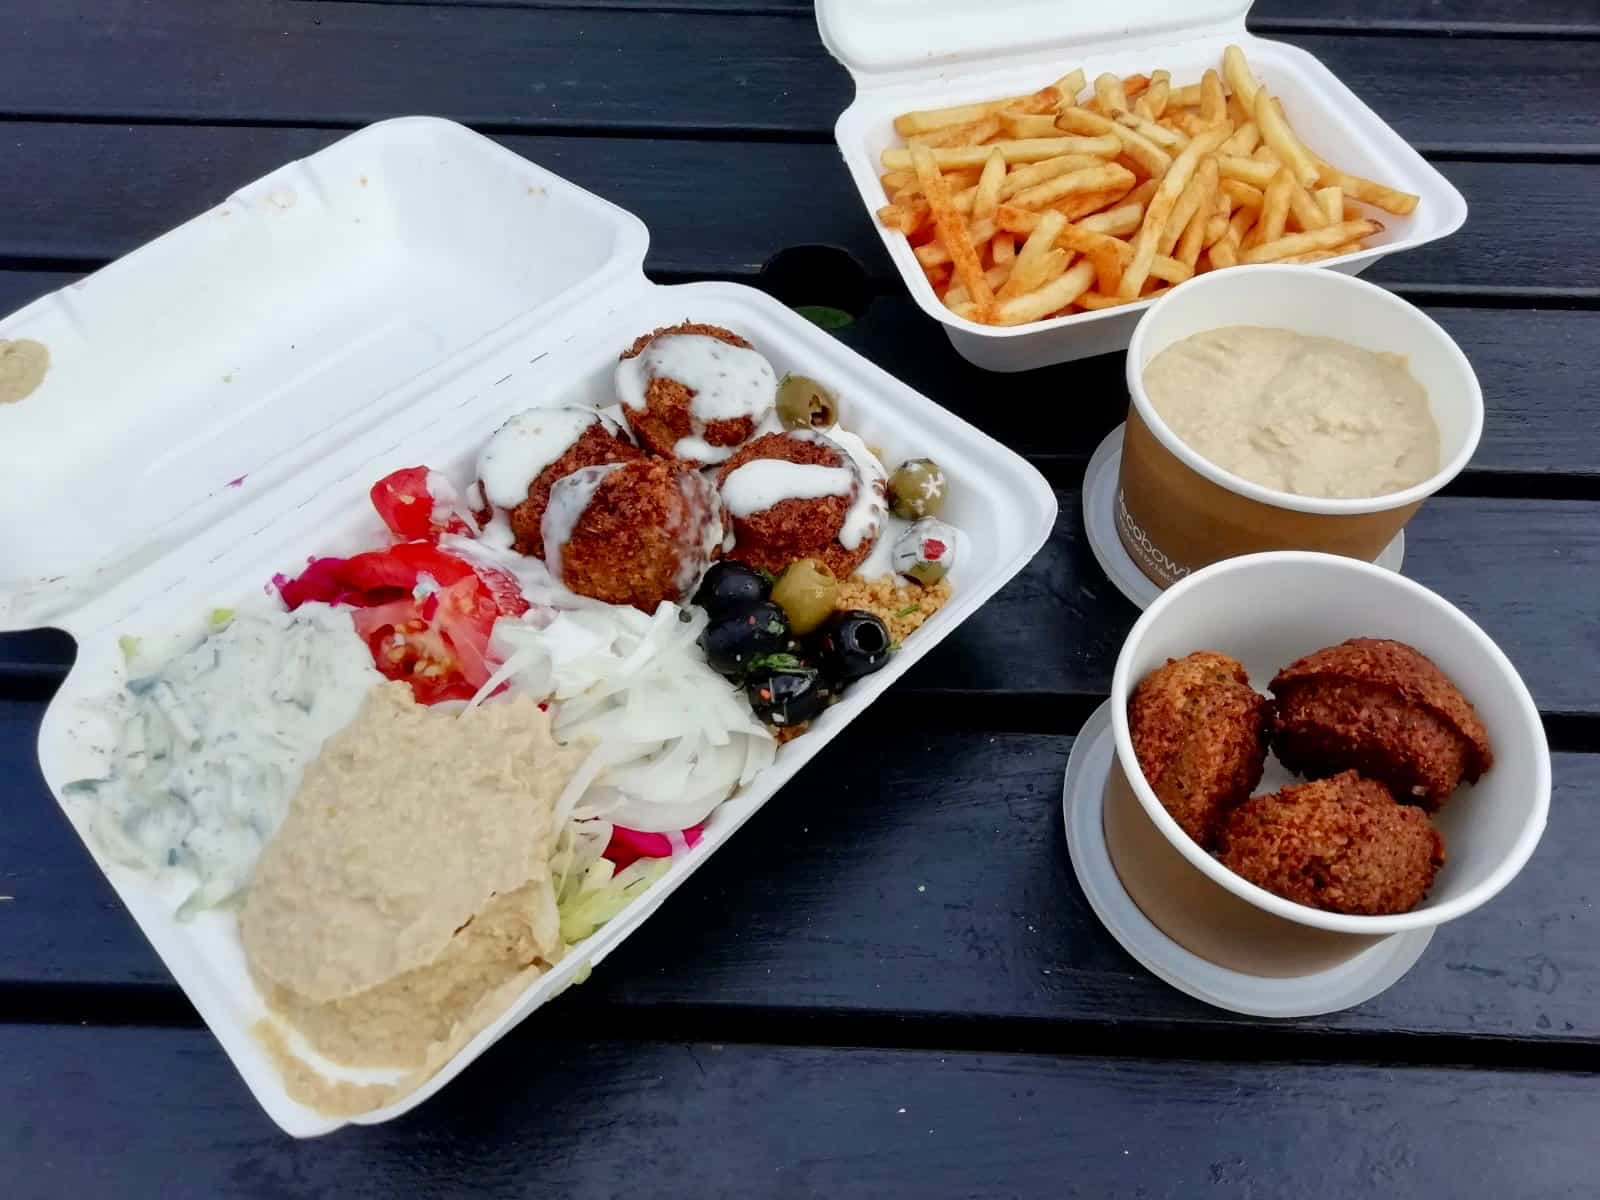 Mezze box, falafel, hummus and chips from What the Pita, Camden London